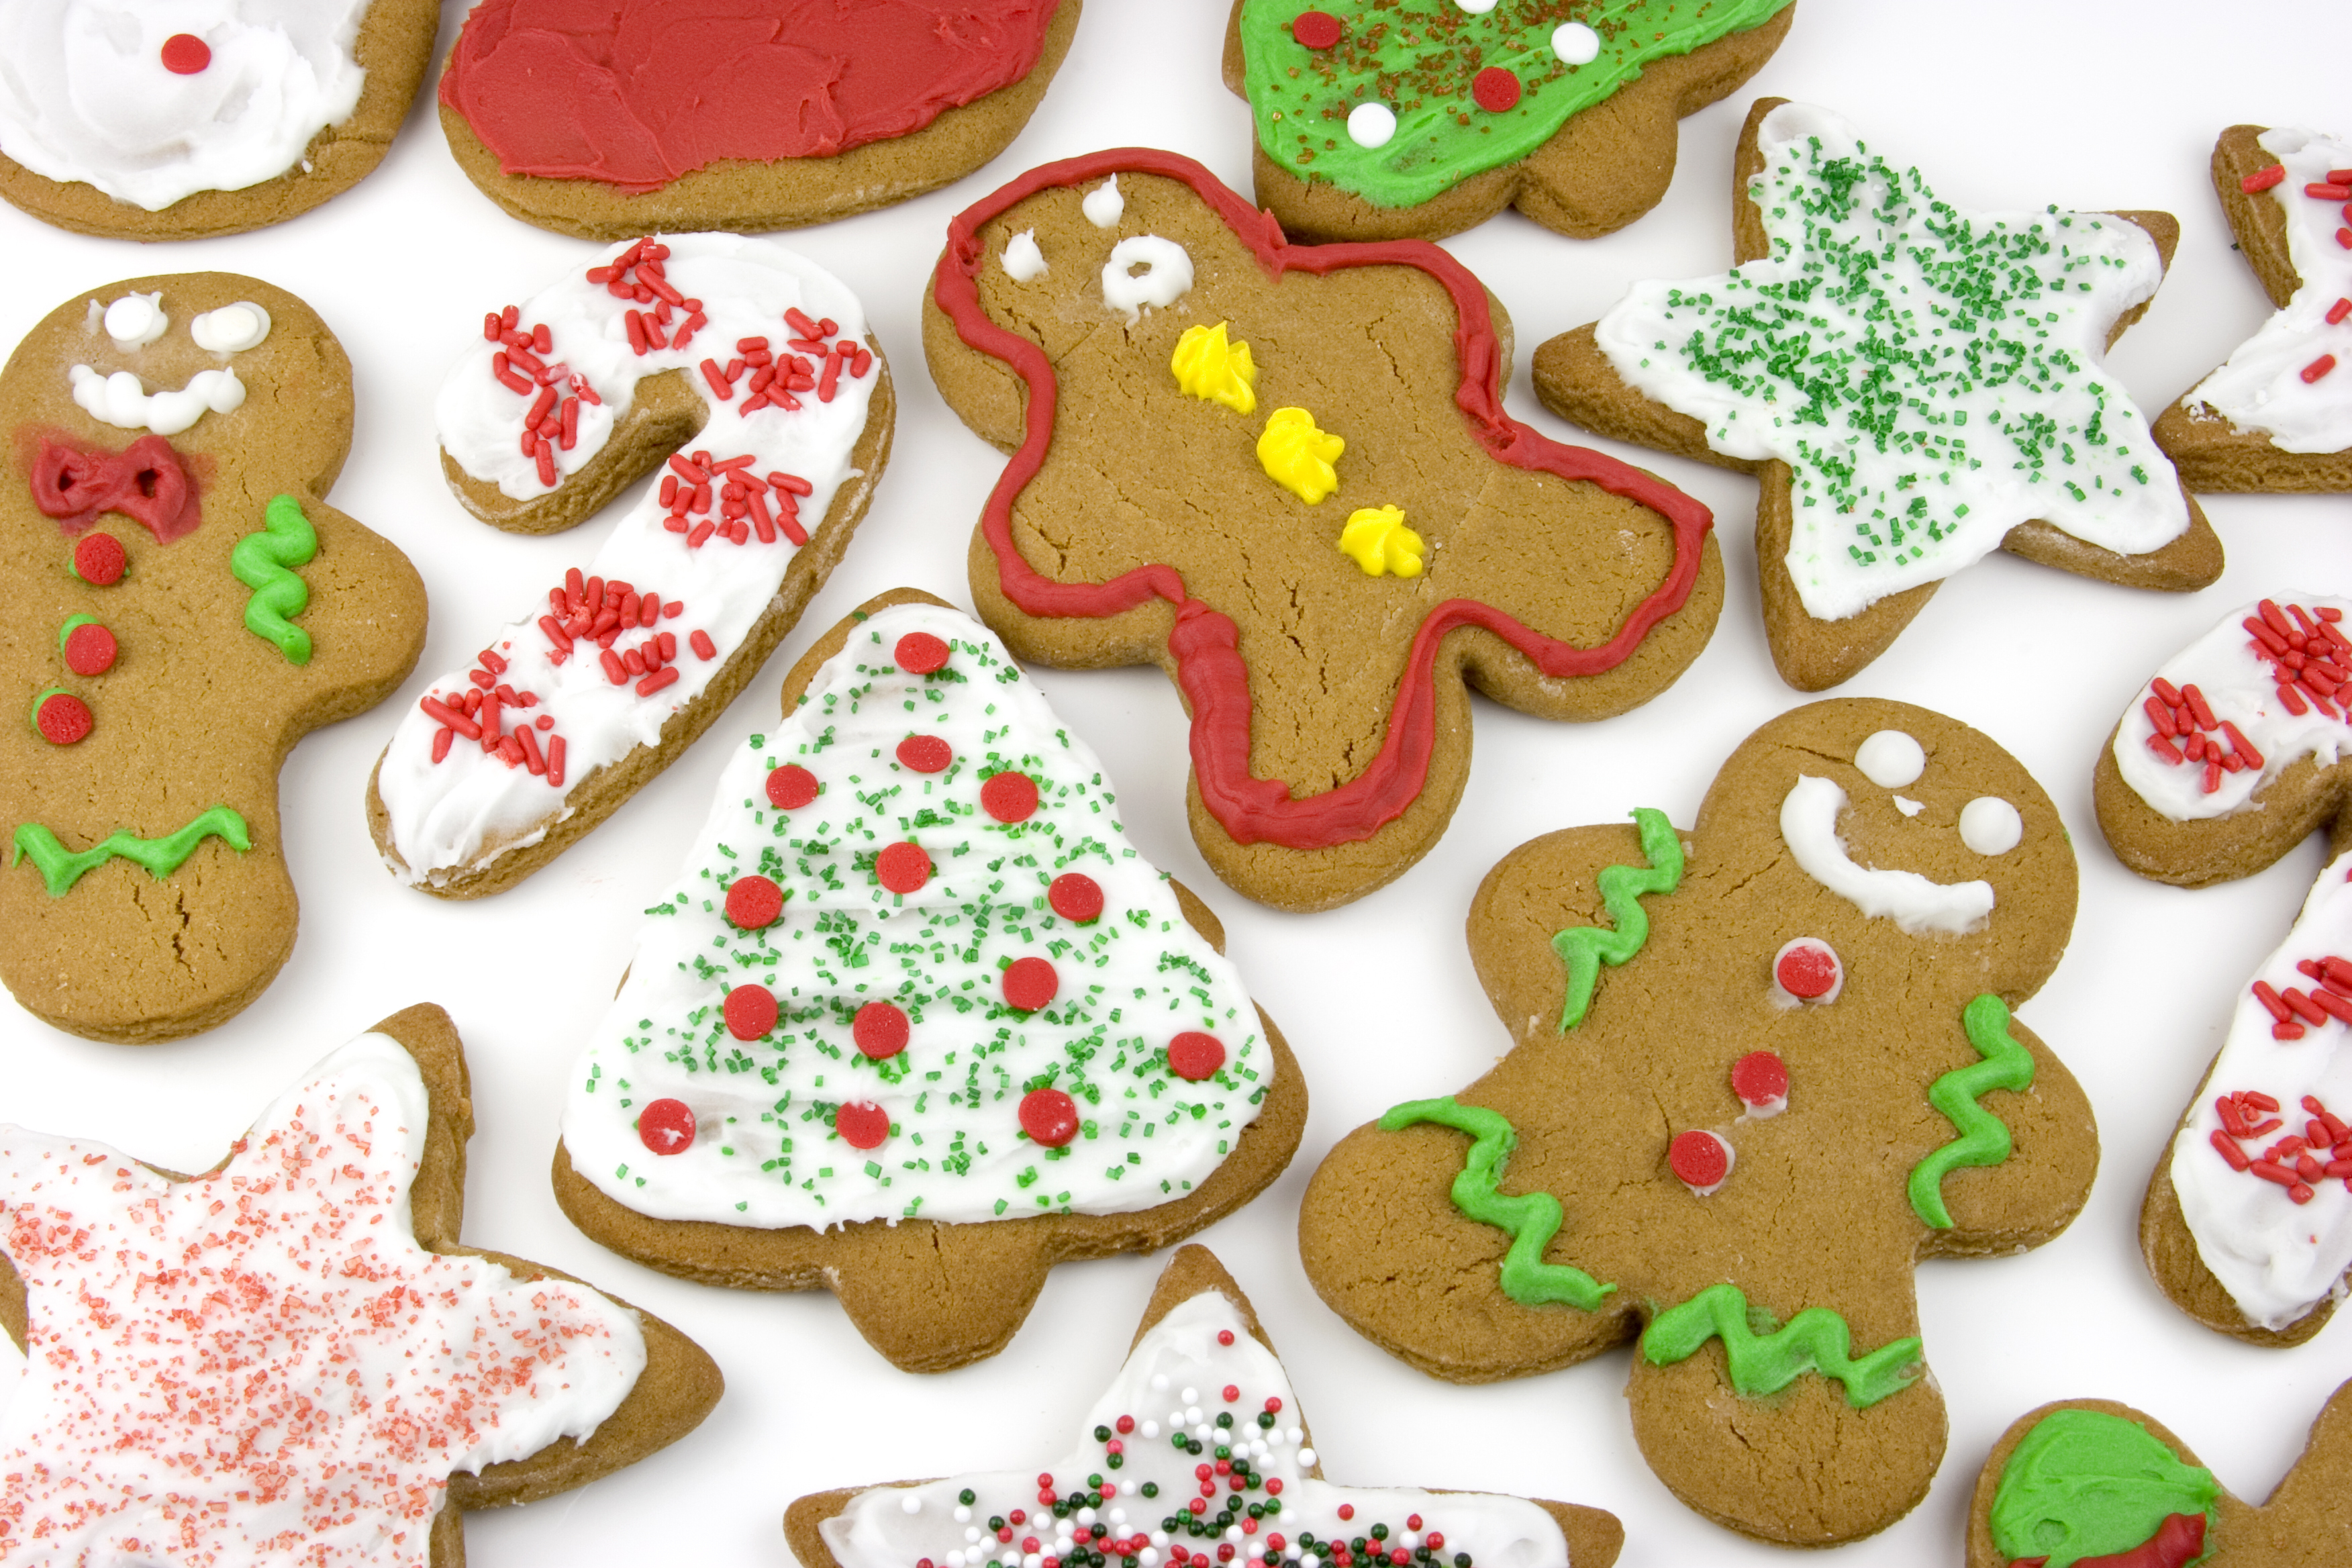 12 Sweet Stress Relieving Treats for the Holidays